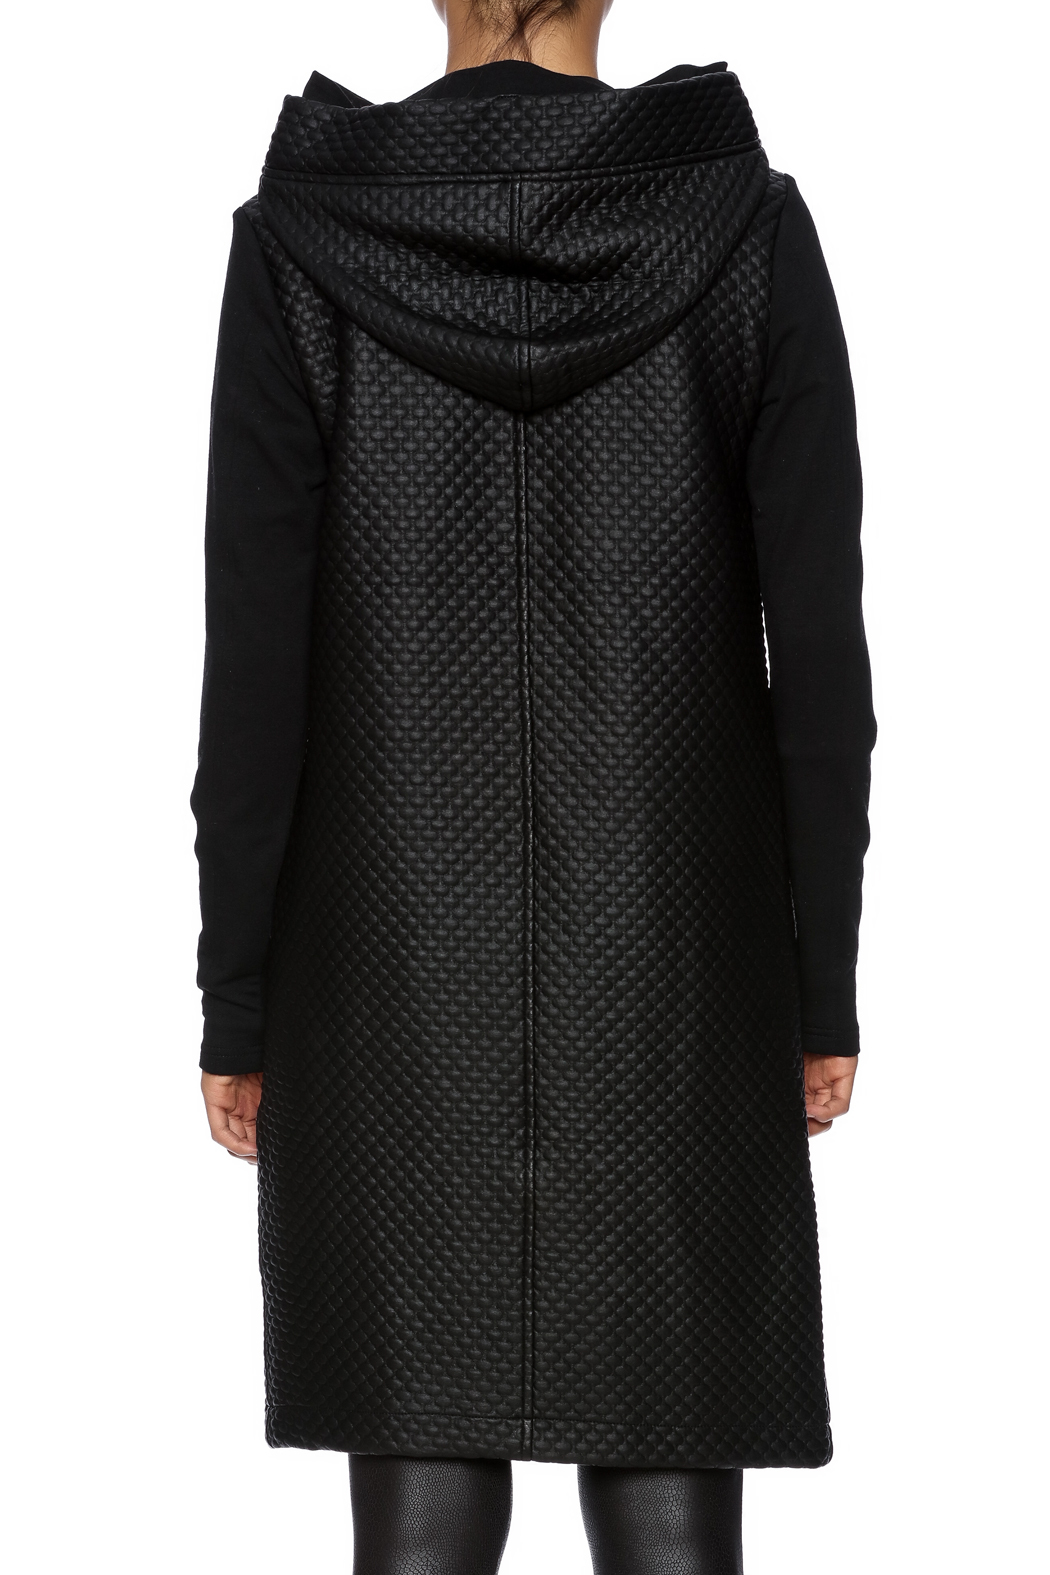 NU Denmark Long Hooded Coat from Long Island by BlueBirdNY